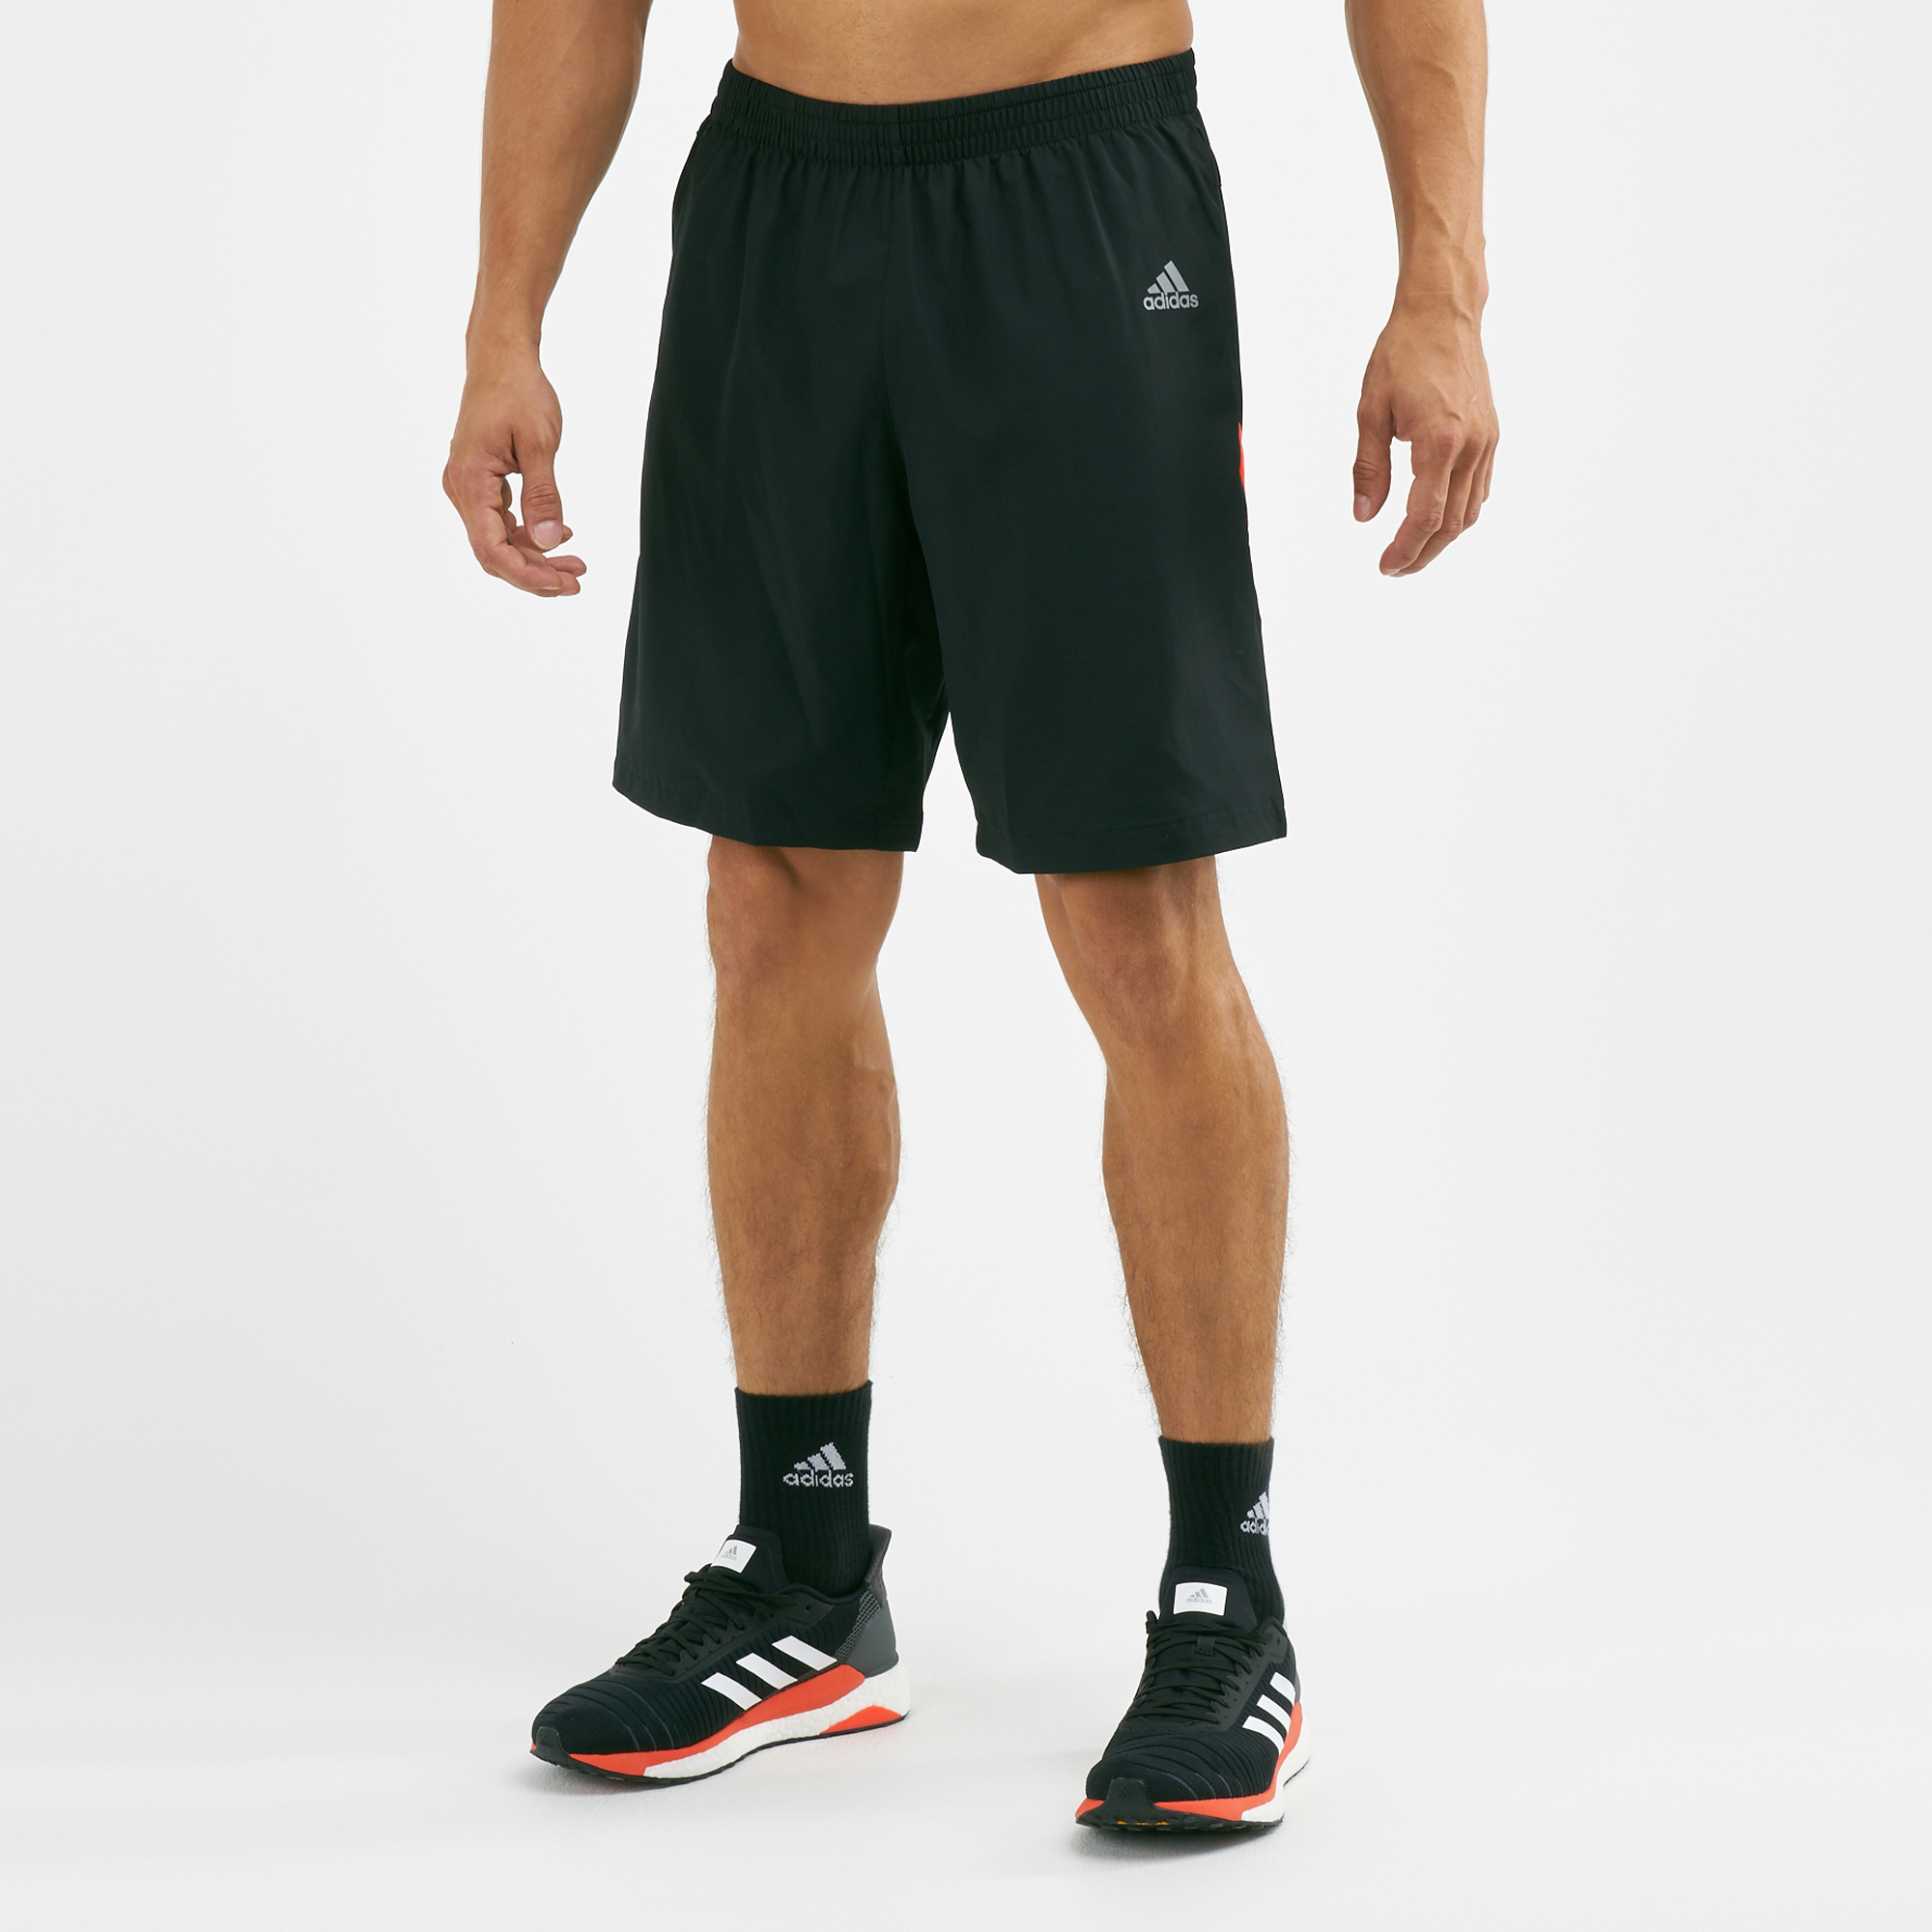 c433ea773ae adidas Men's Own The Run Shorts | Shorts | Clothing | Mens | SSS